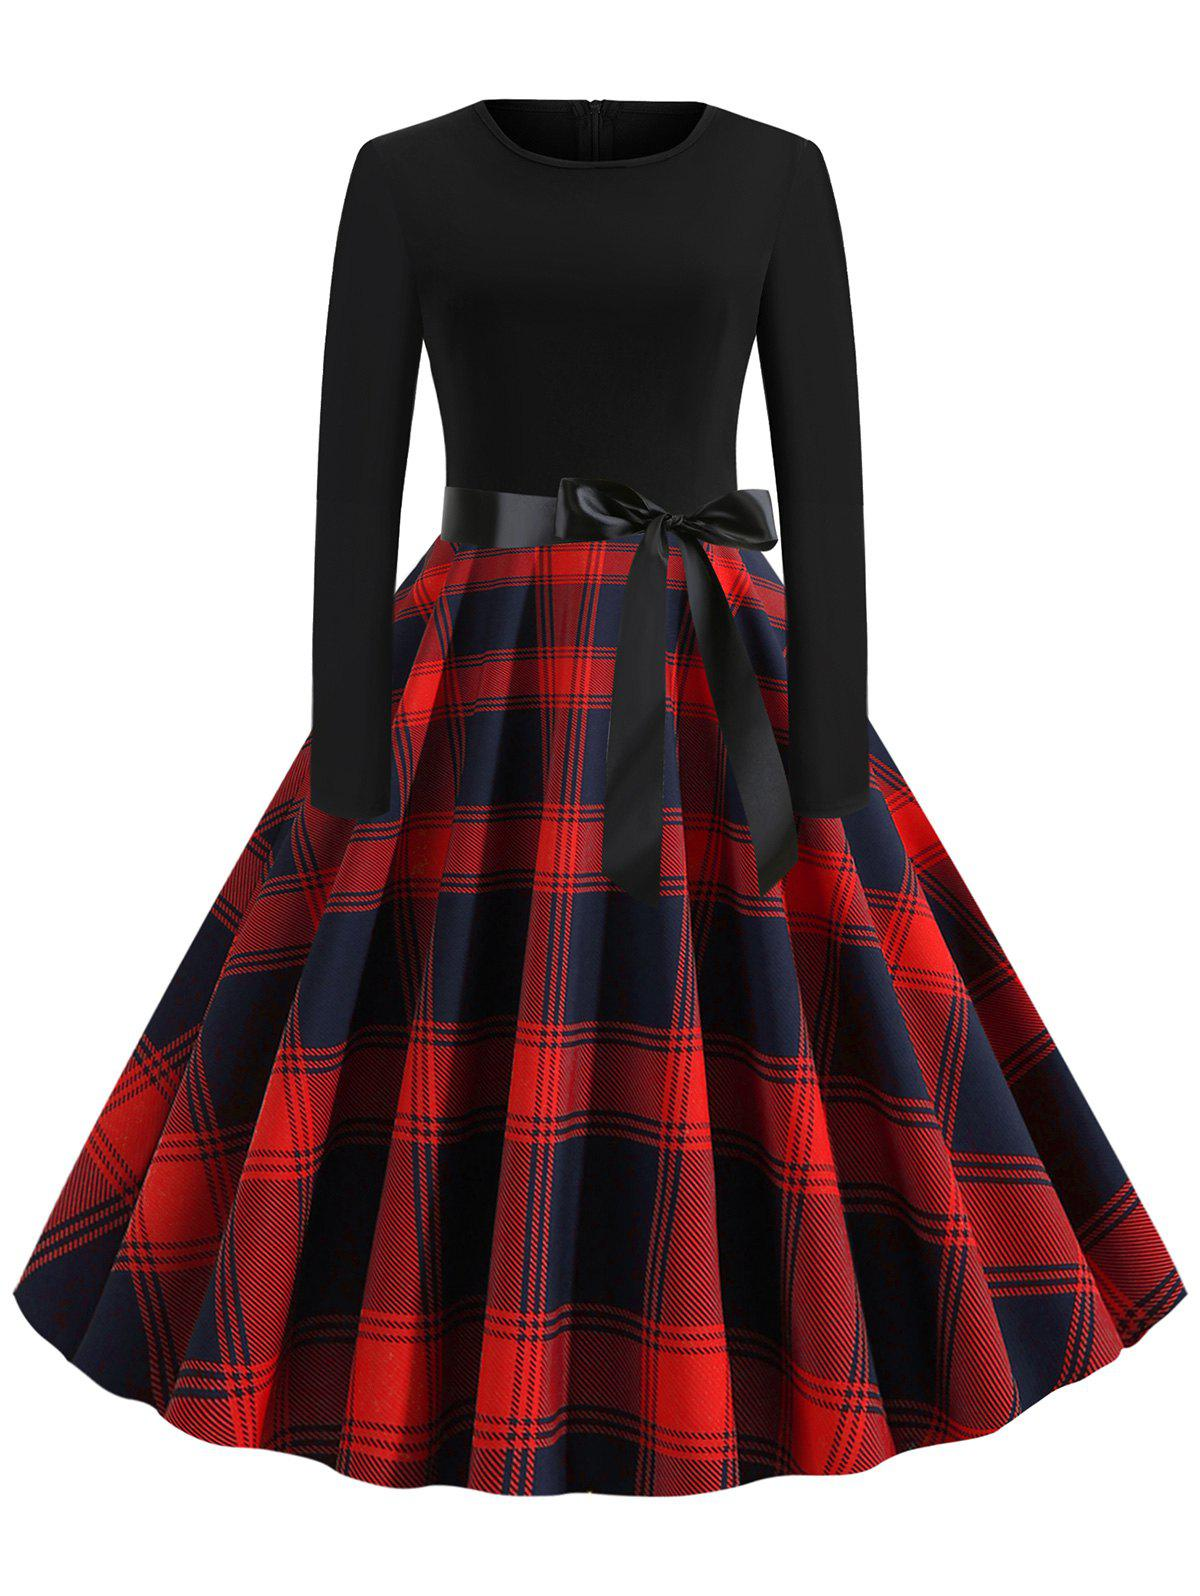 Shops Plaid Belted Vintage Flare Dress